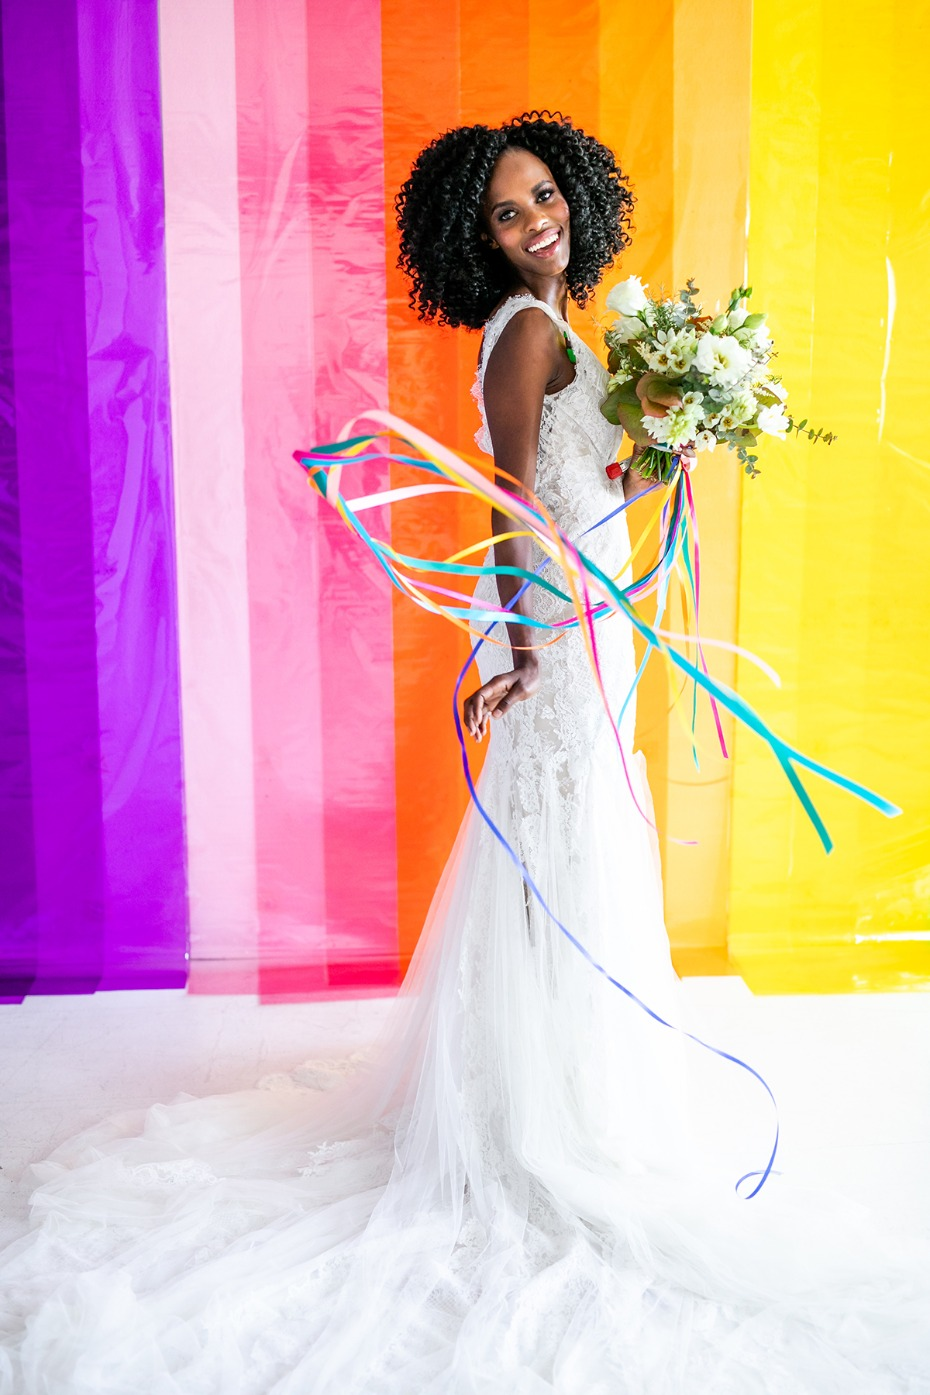 rainbow ribbons for your wedding bouquet